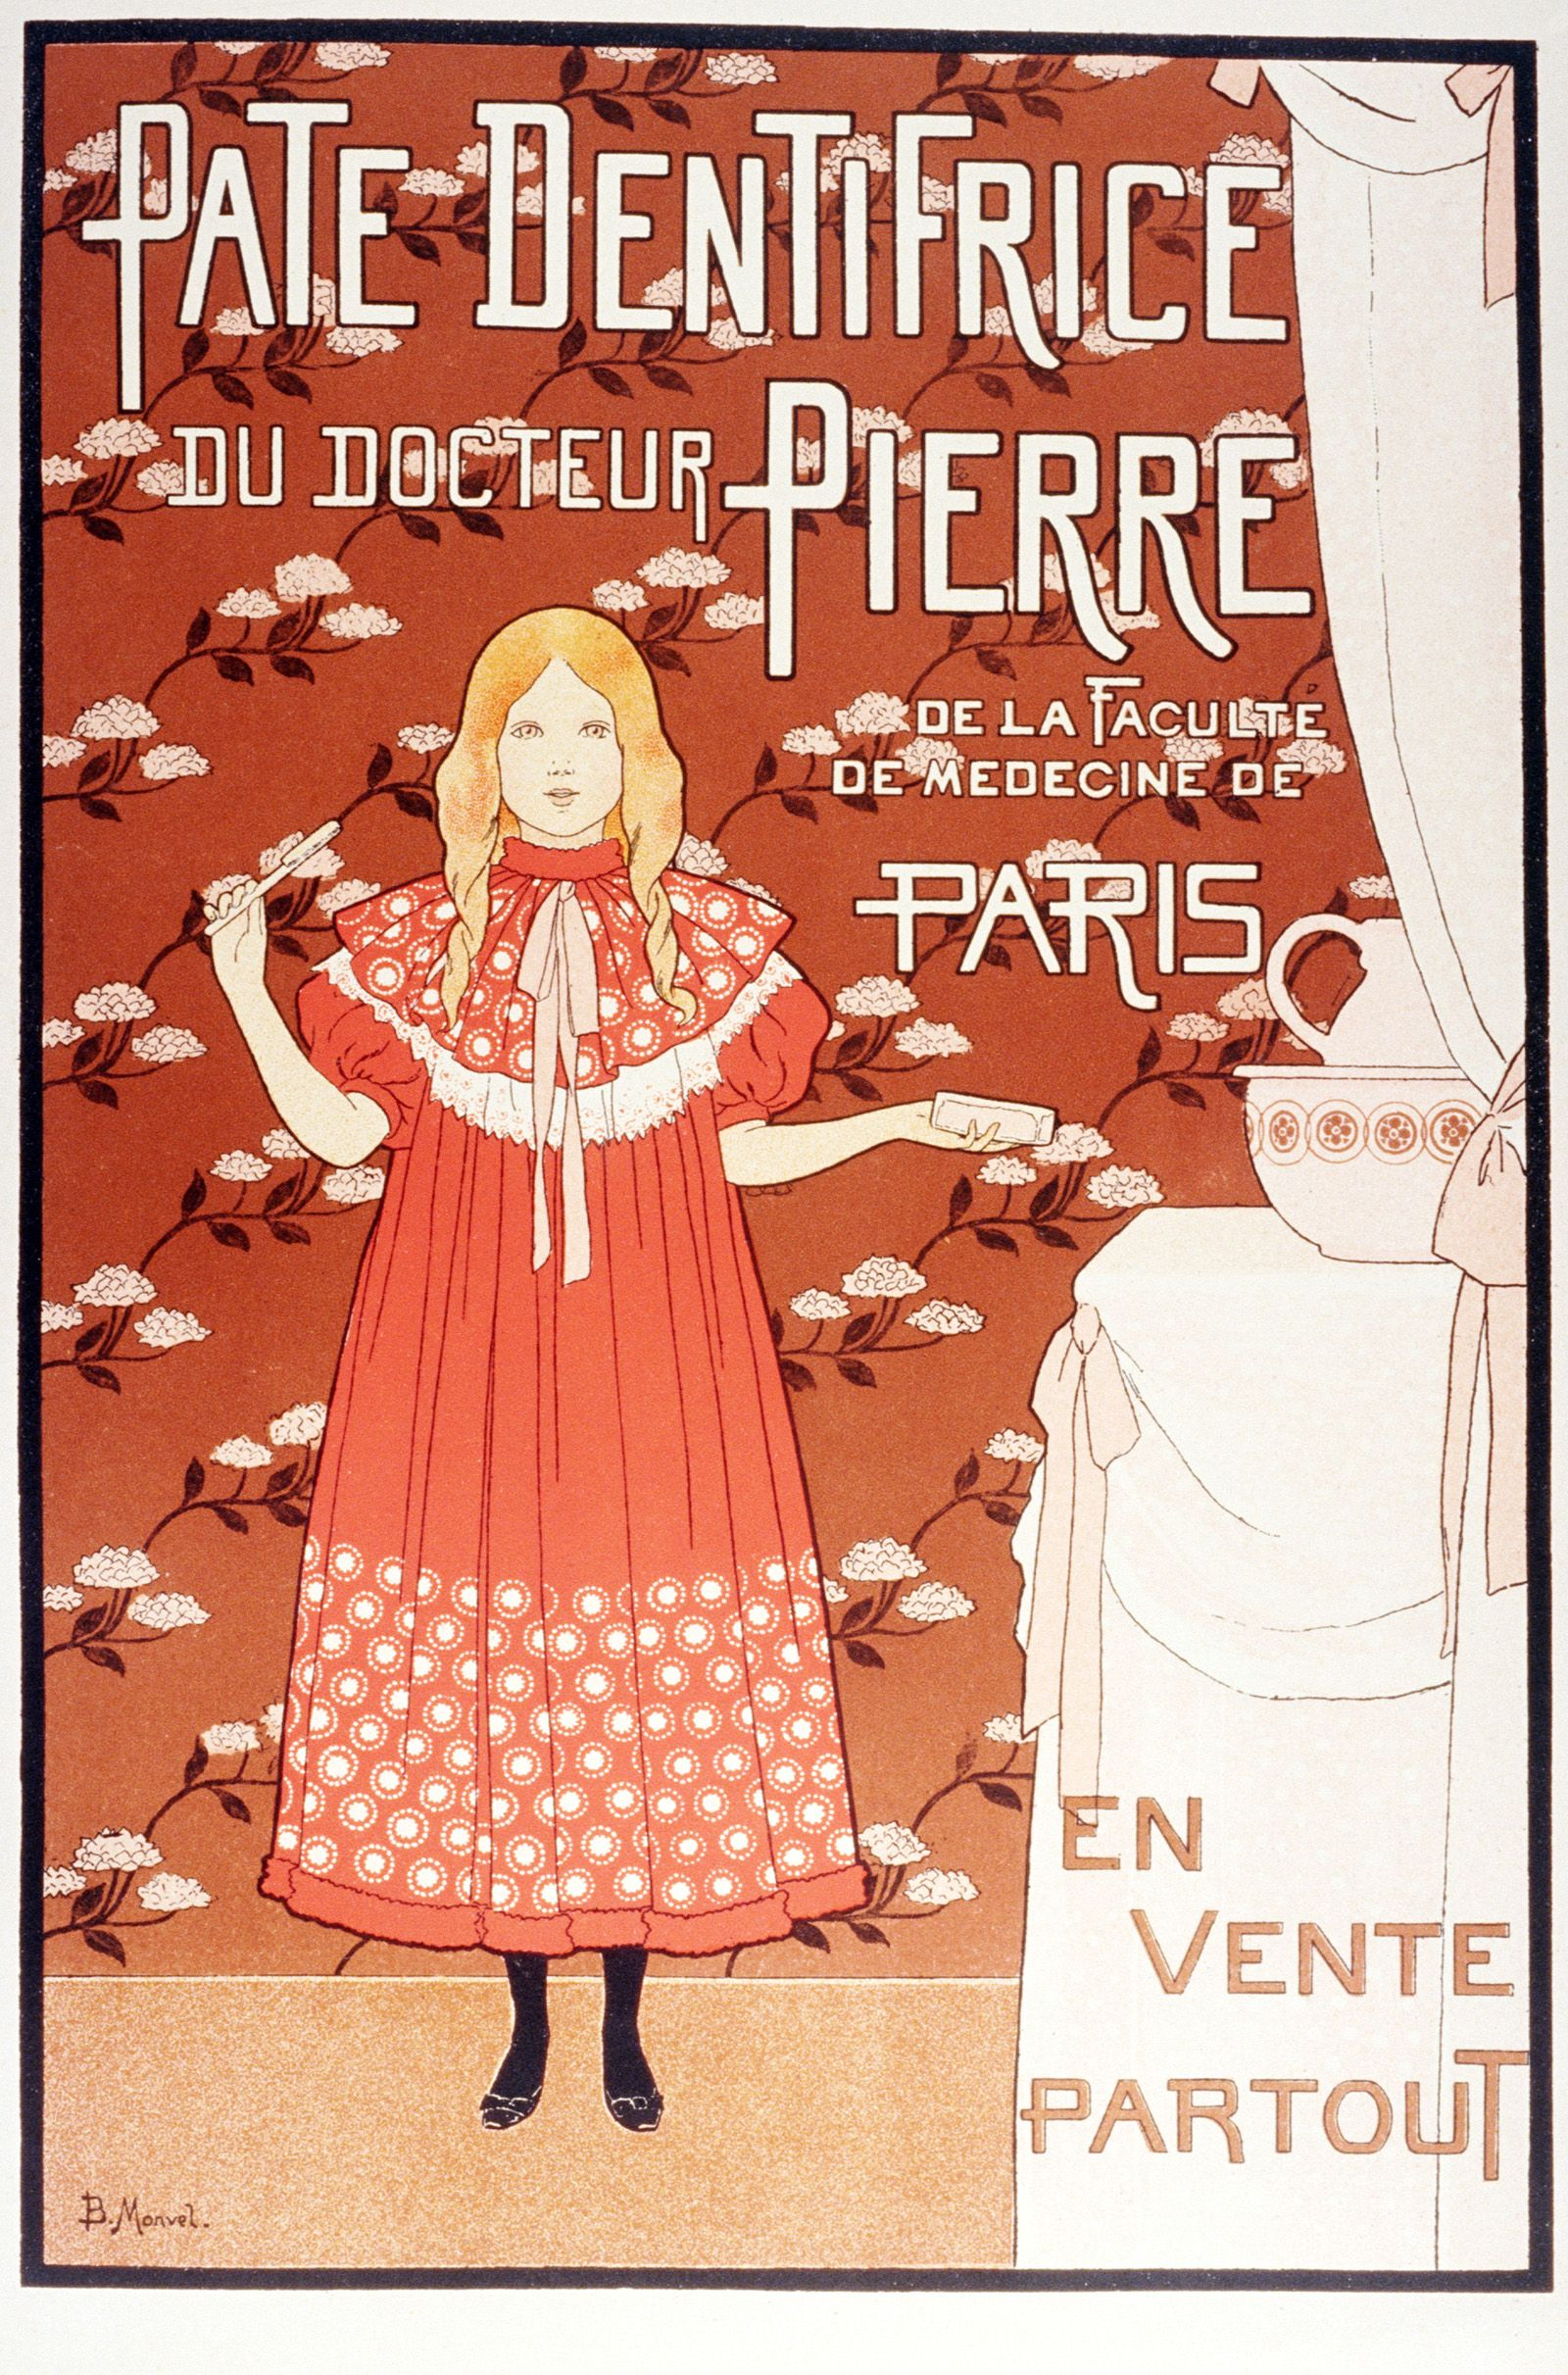 Posters from Europe c.1900 | Vintages 1 | Pinterest